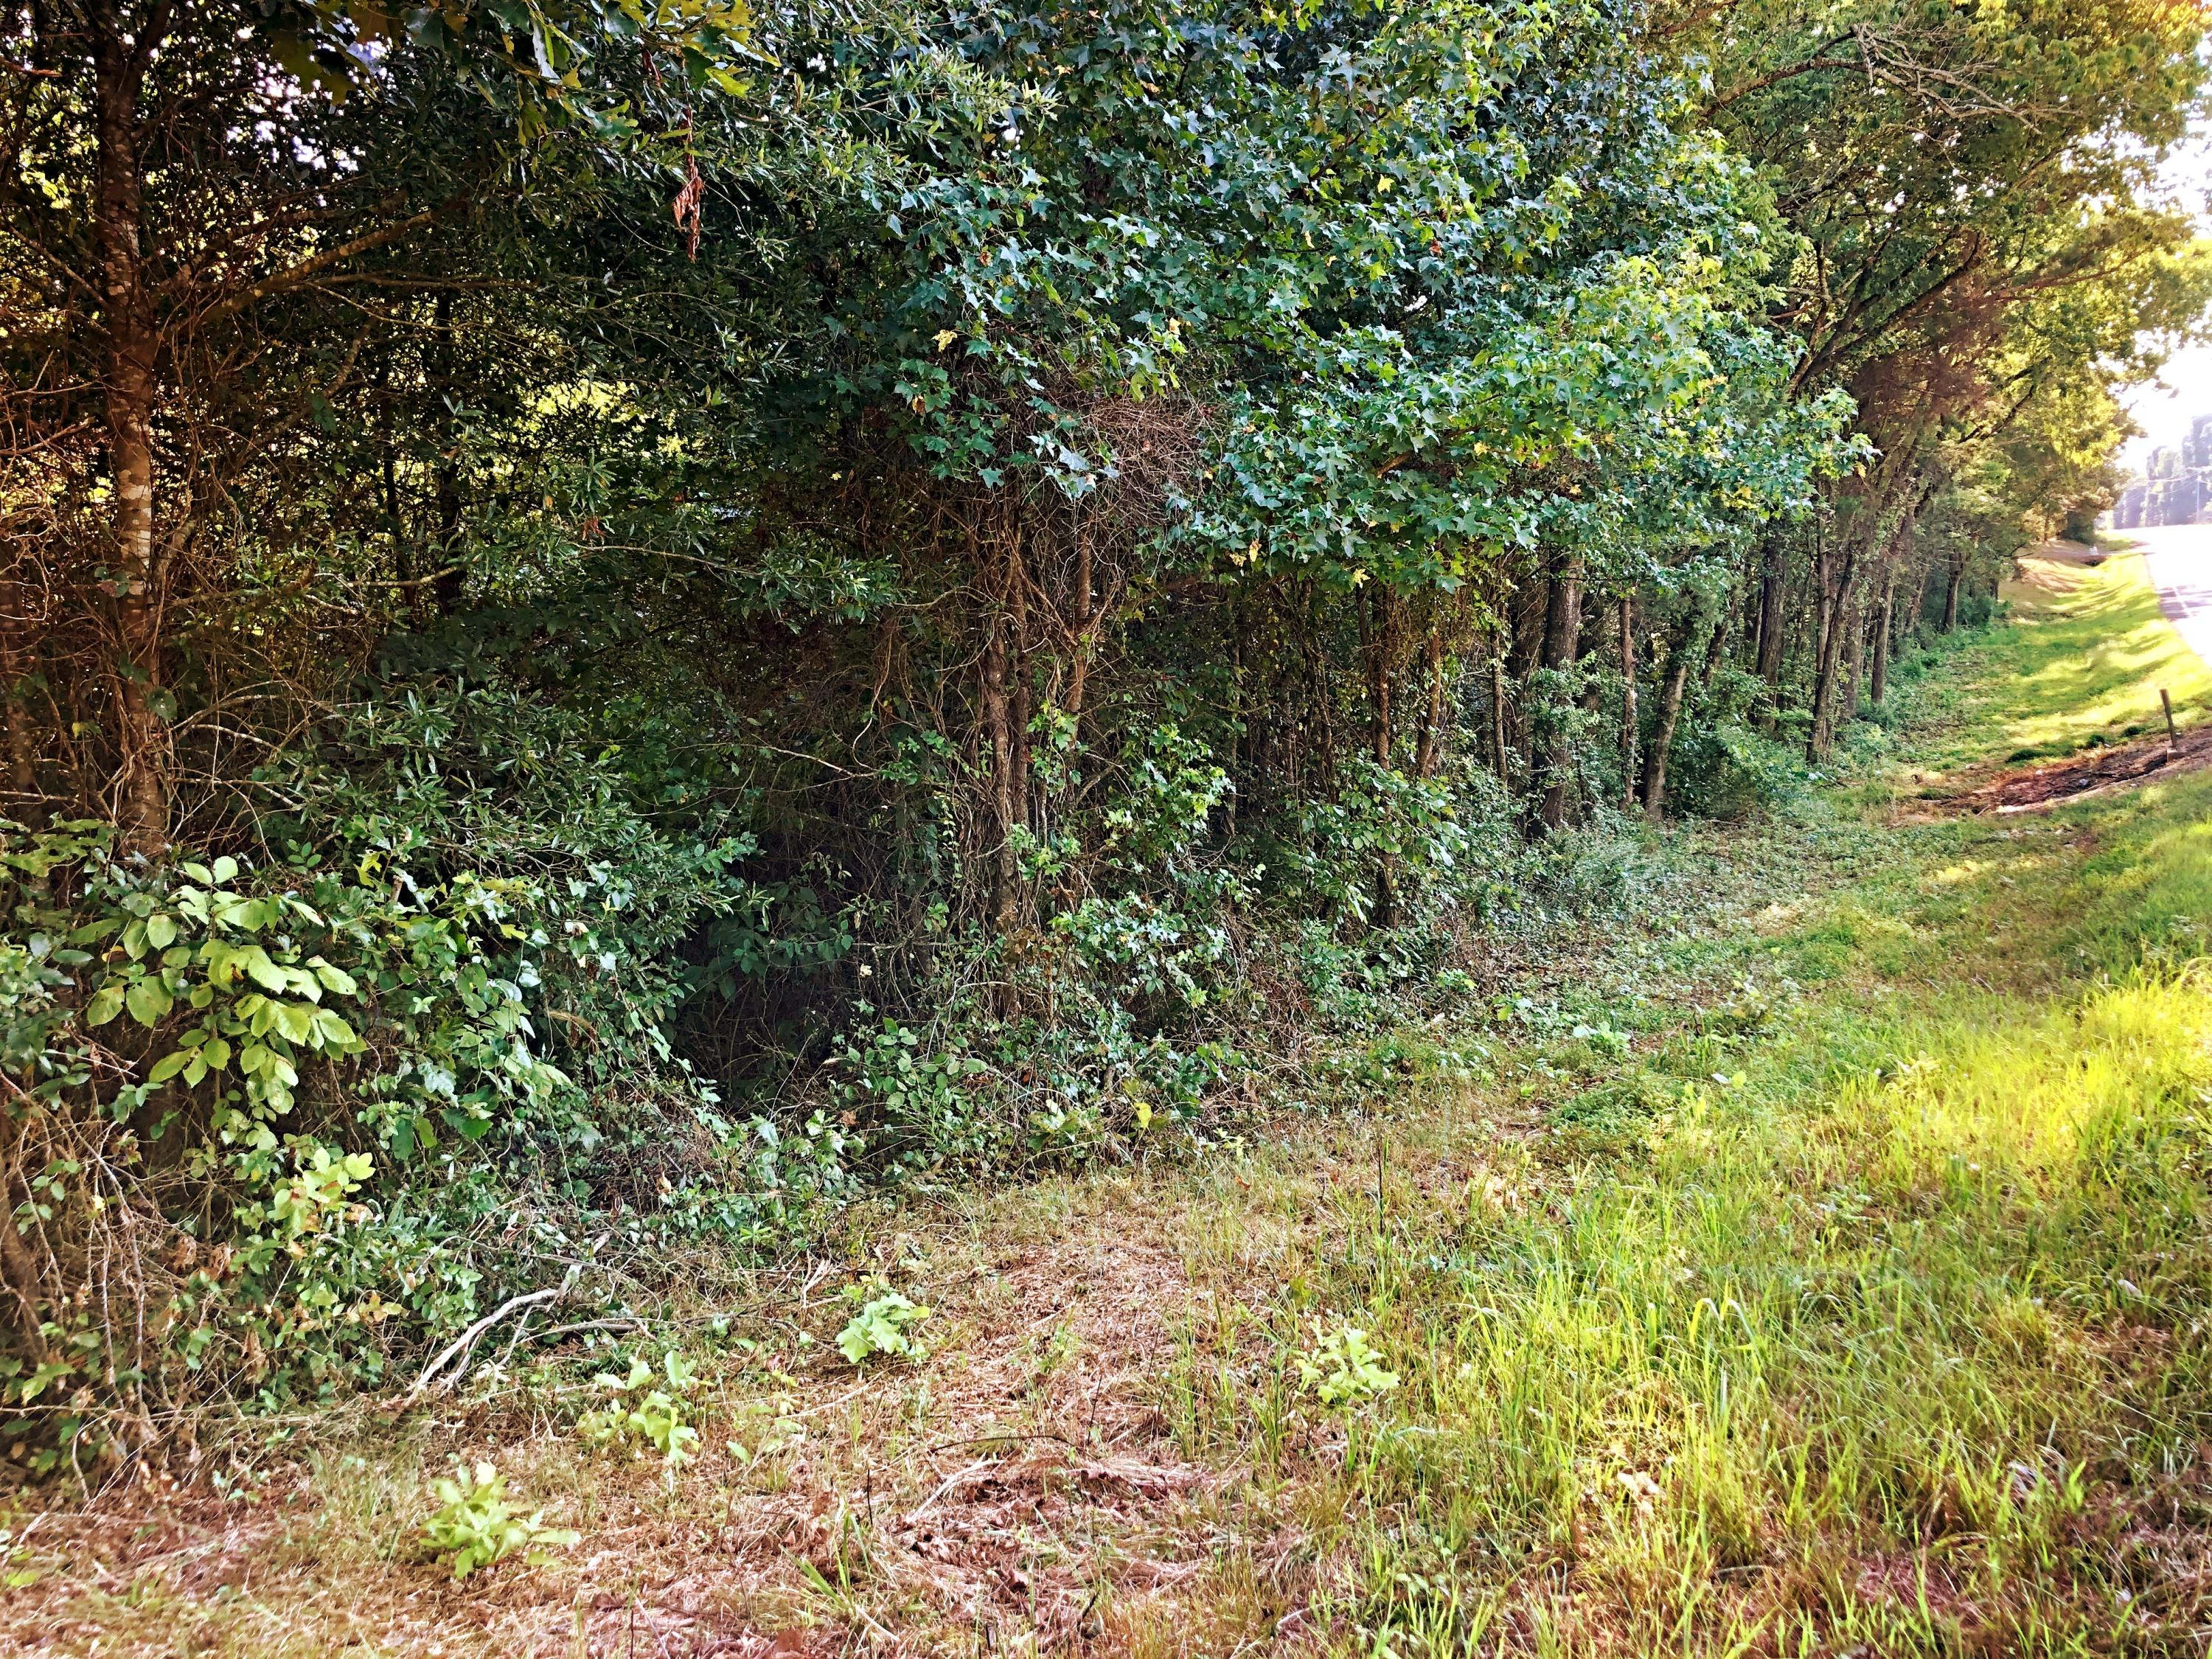 Large photo 9 of land for sale at 0 State Highway 155 , Dardanelle, AR, listed by Coldwell Banker James R. Ford